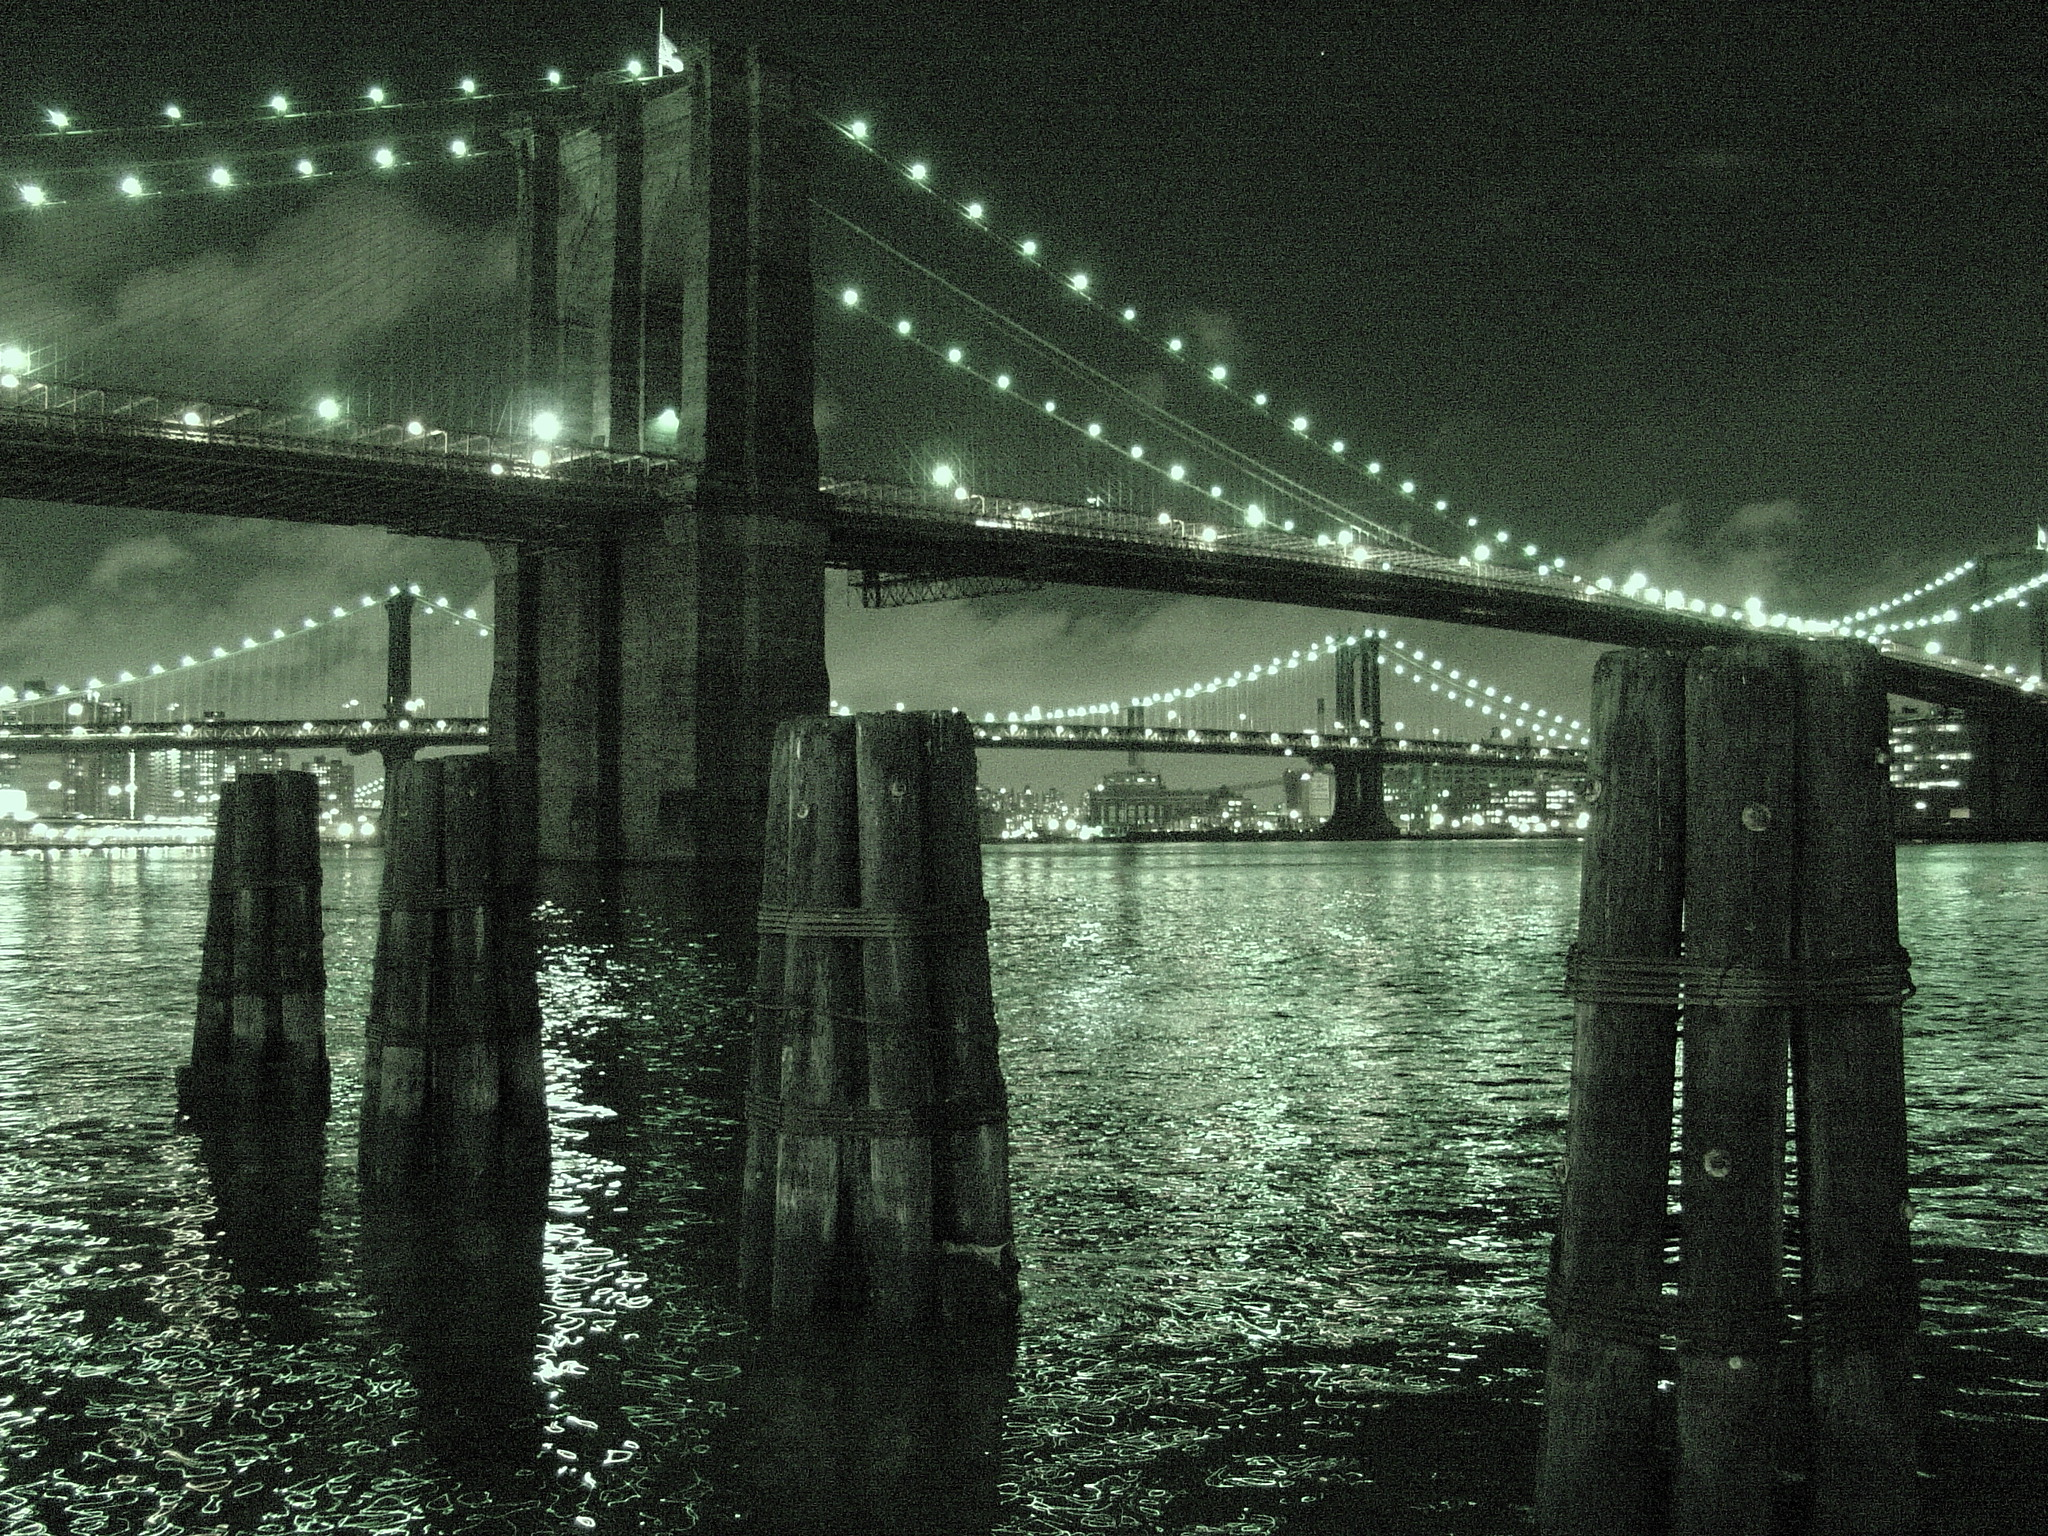 Brooklyn Bridge, Jan 2005